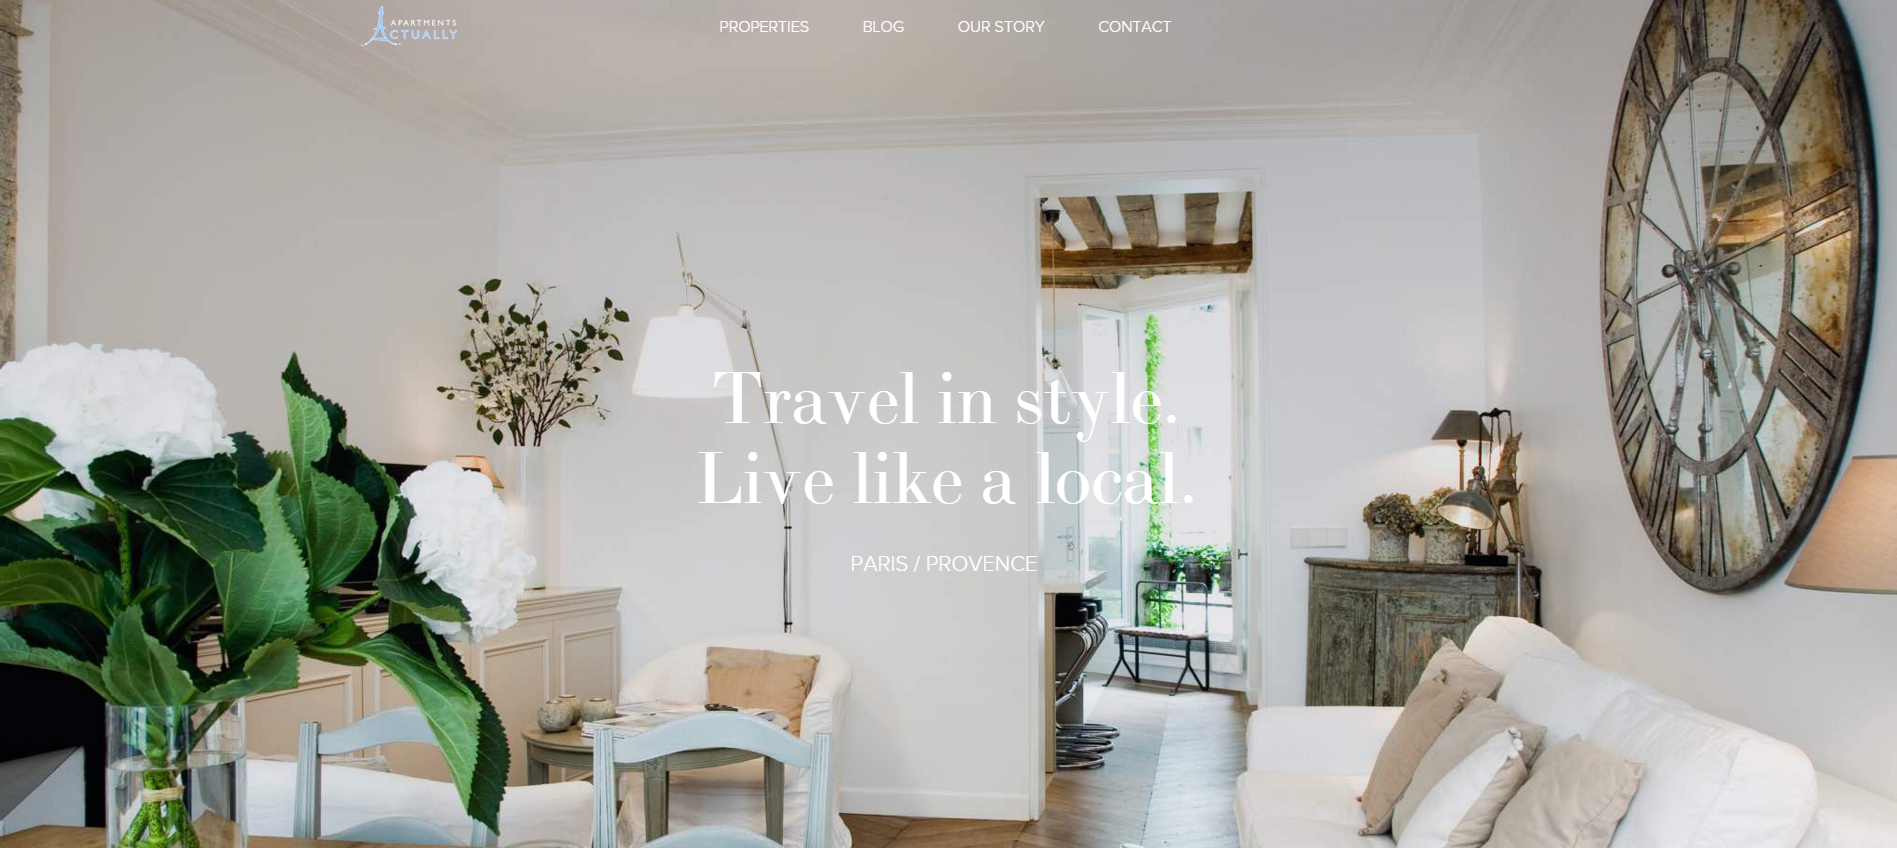 Nice site with WP Rentals theme